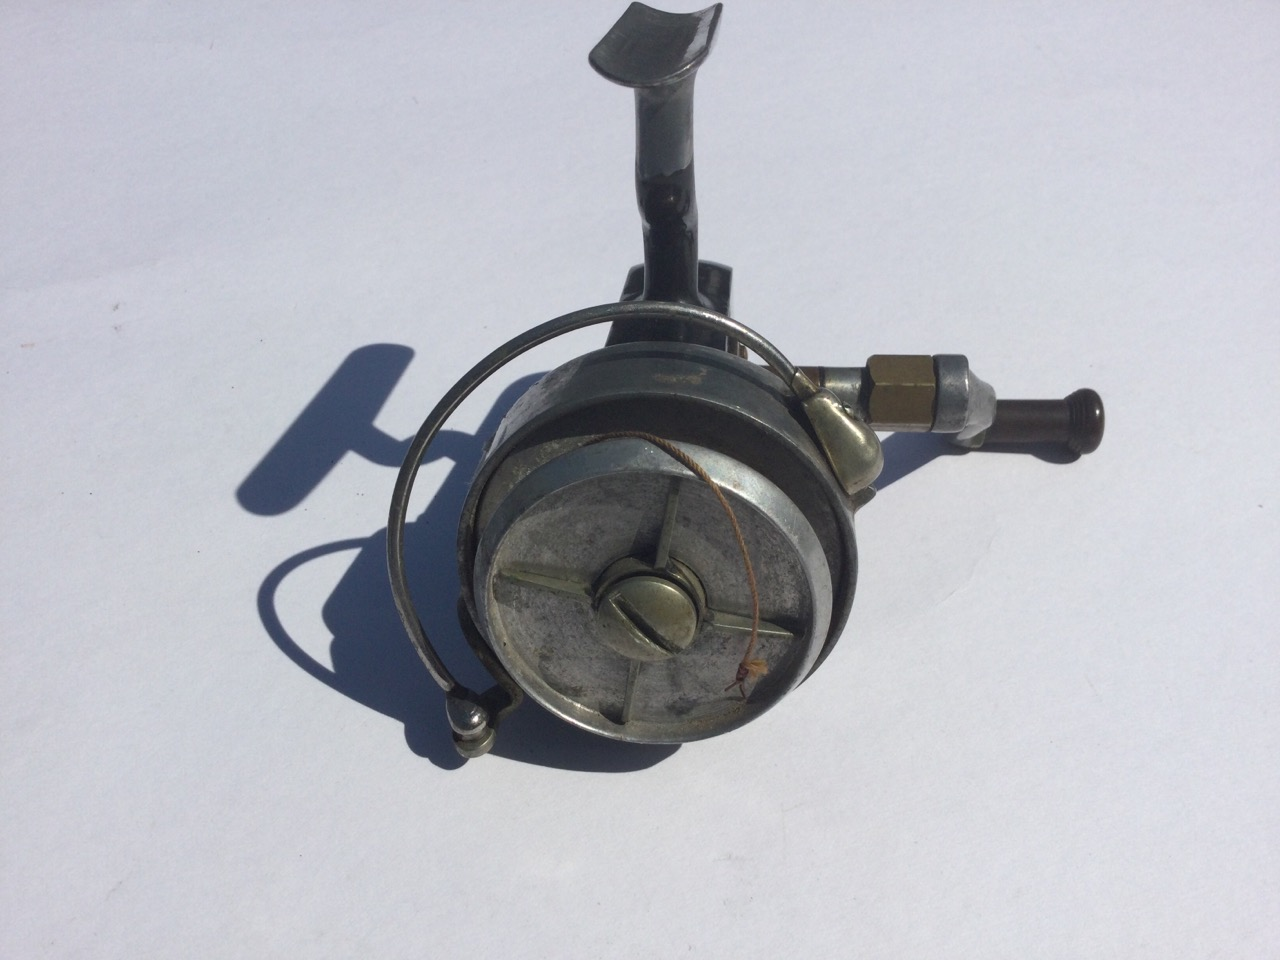 A Hardy Altex spinning reel, No 2 Mark V, having grey metallic body and folding handle. - Image 3 of 3